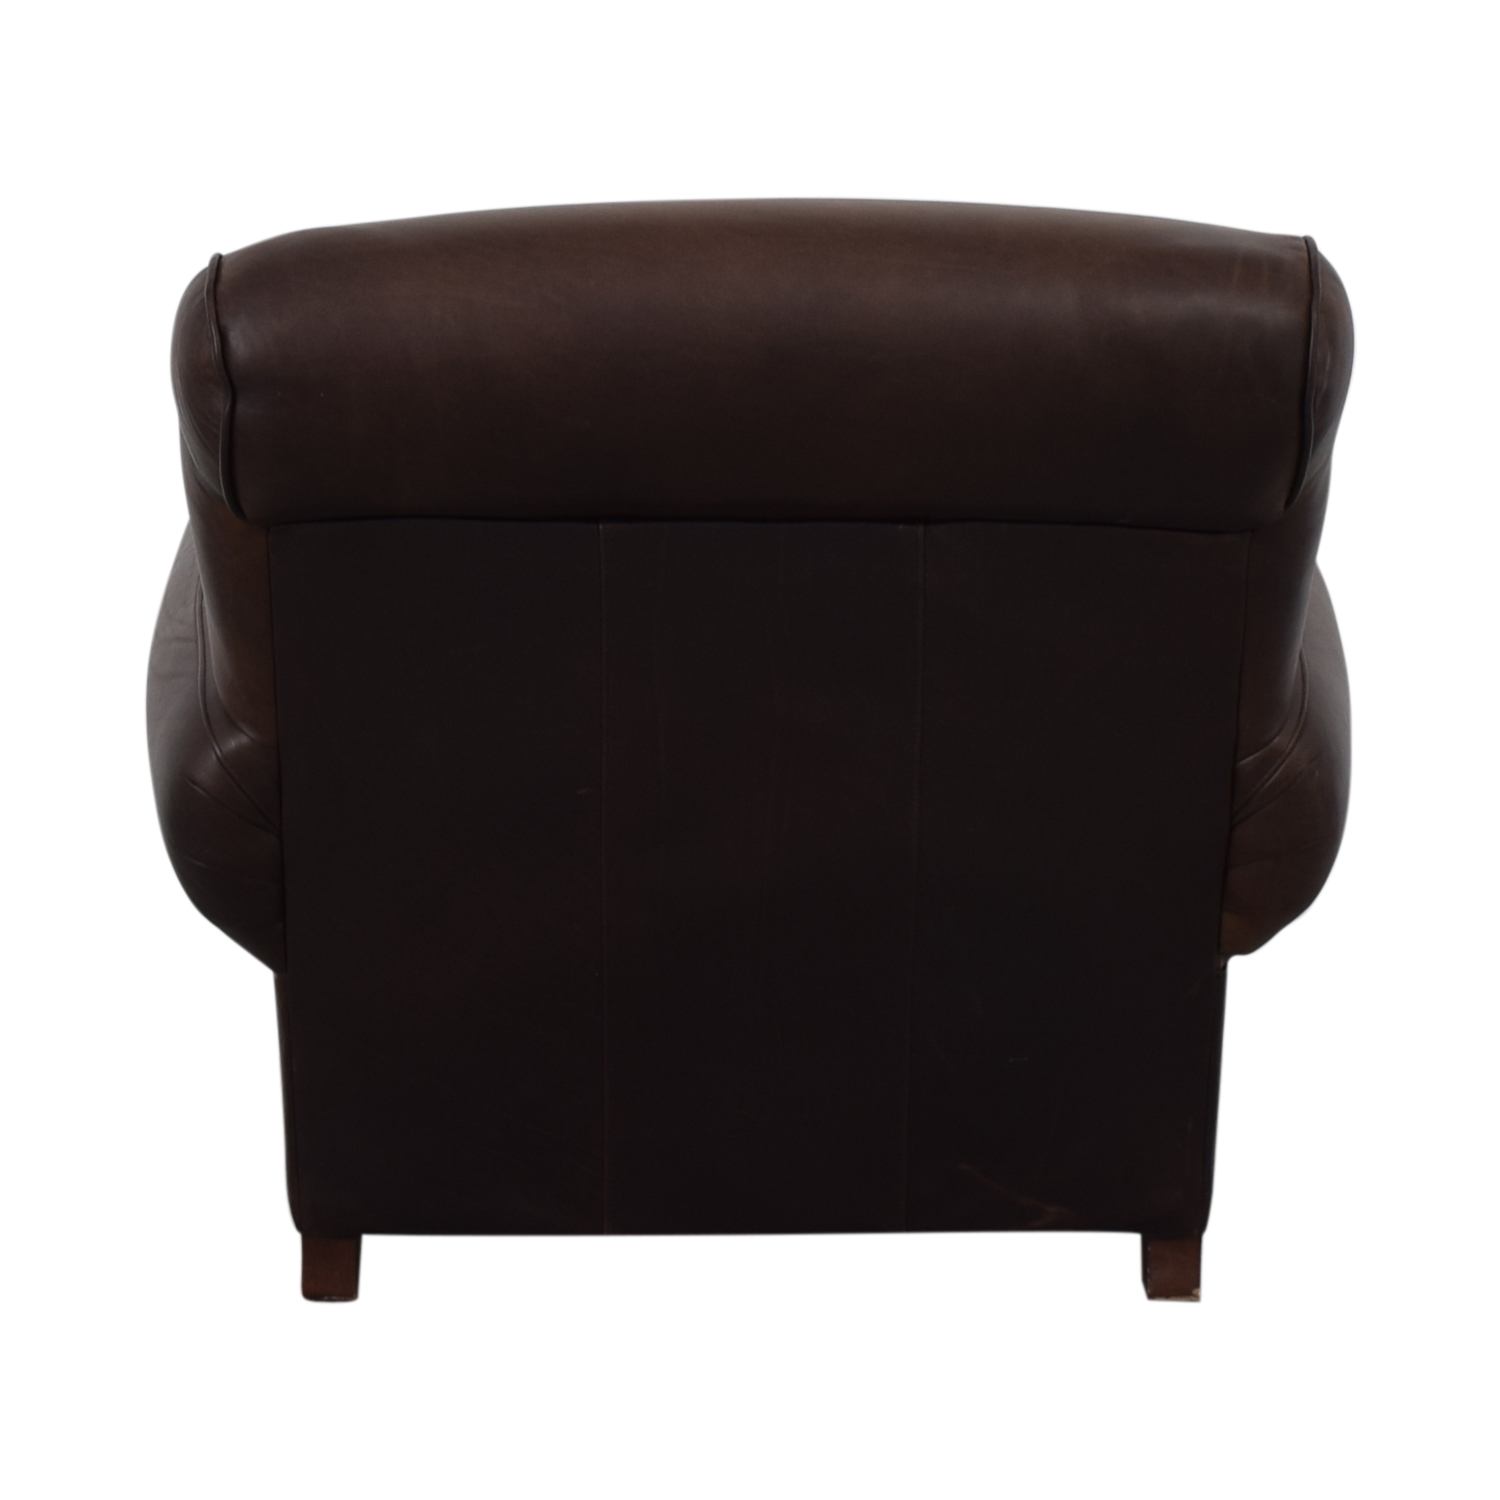 Pottery Barn Pottery Barn Brown Club Chair used